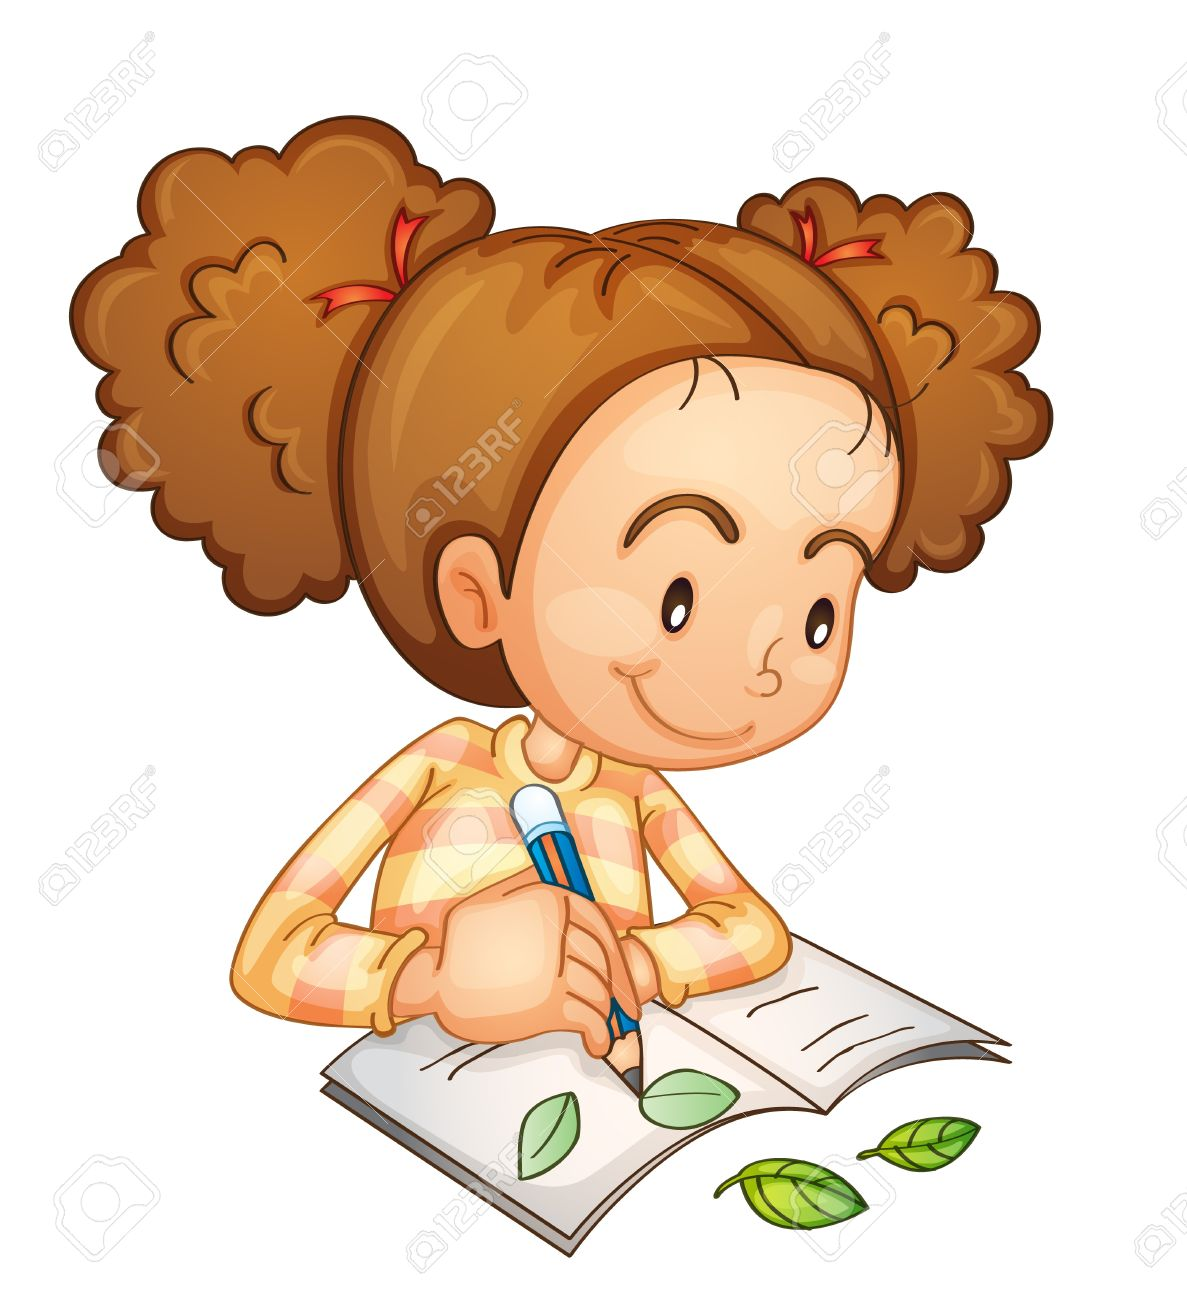 Illustration of a girl studying.